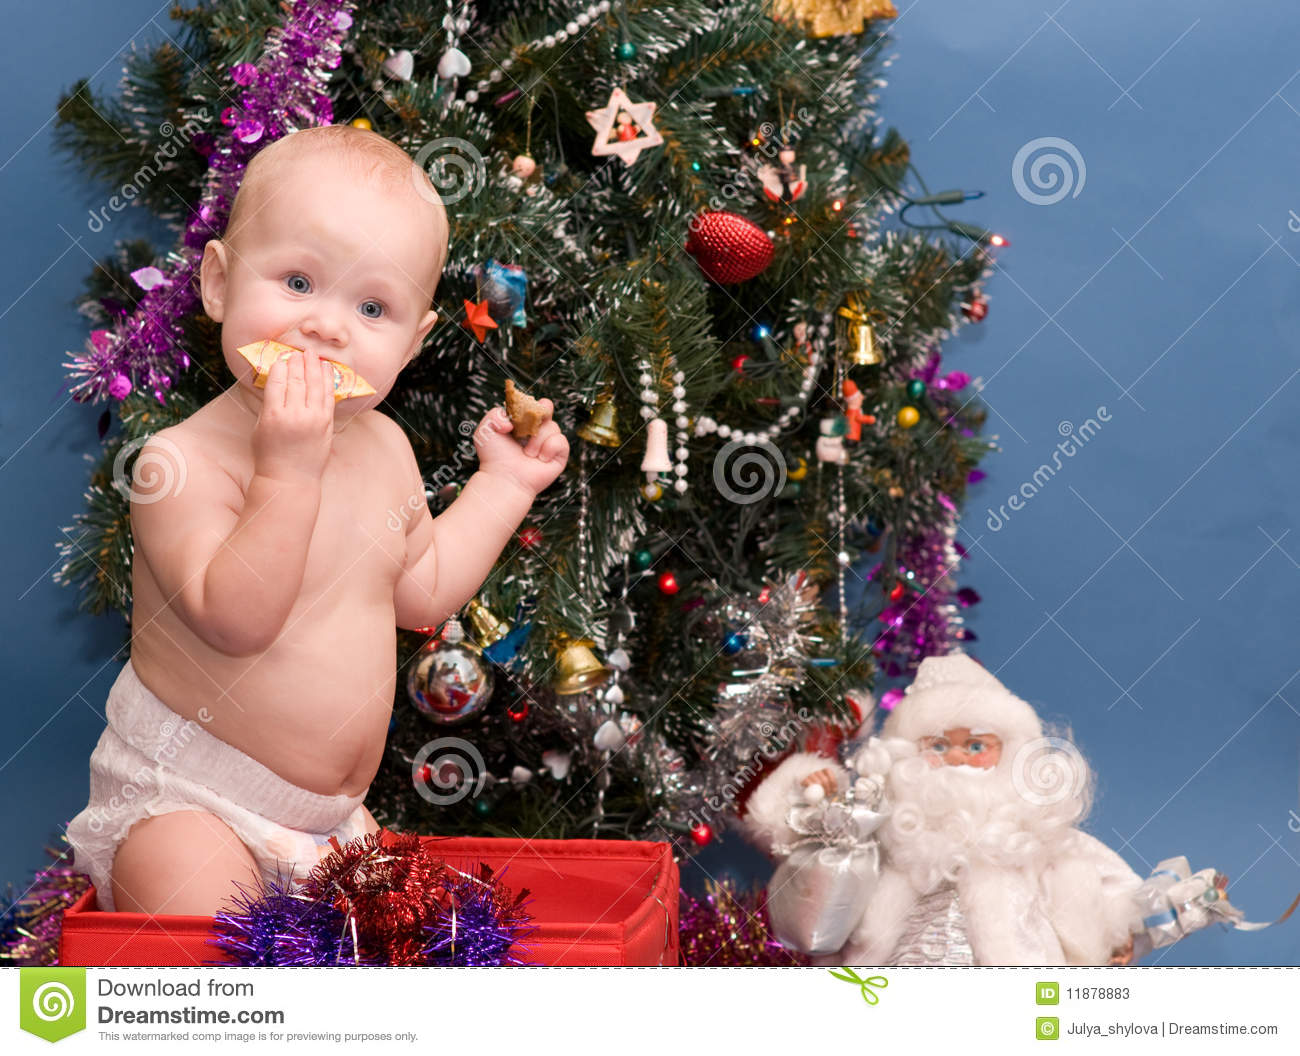 Cute Baby In Front Of Christmas Tree Stock Photos - Image: 11878883